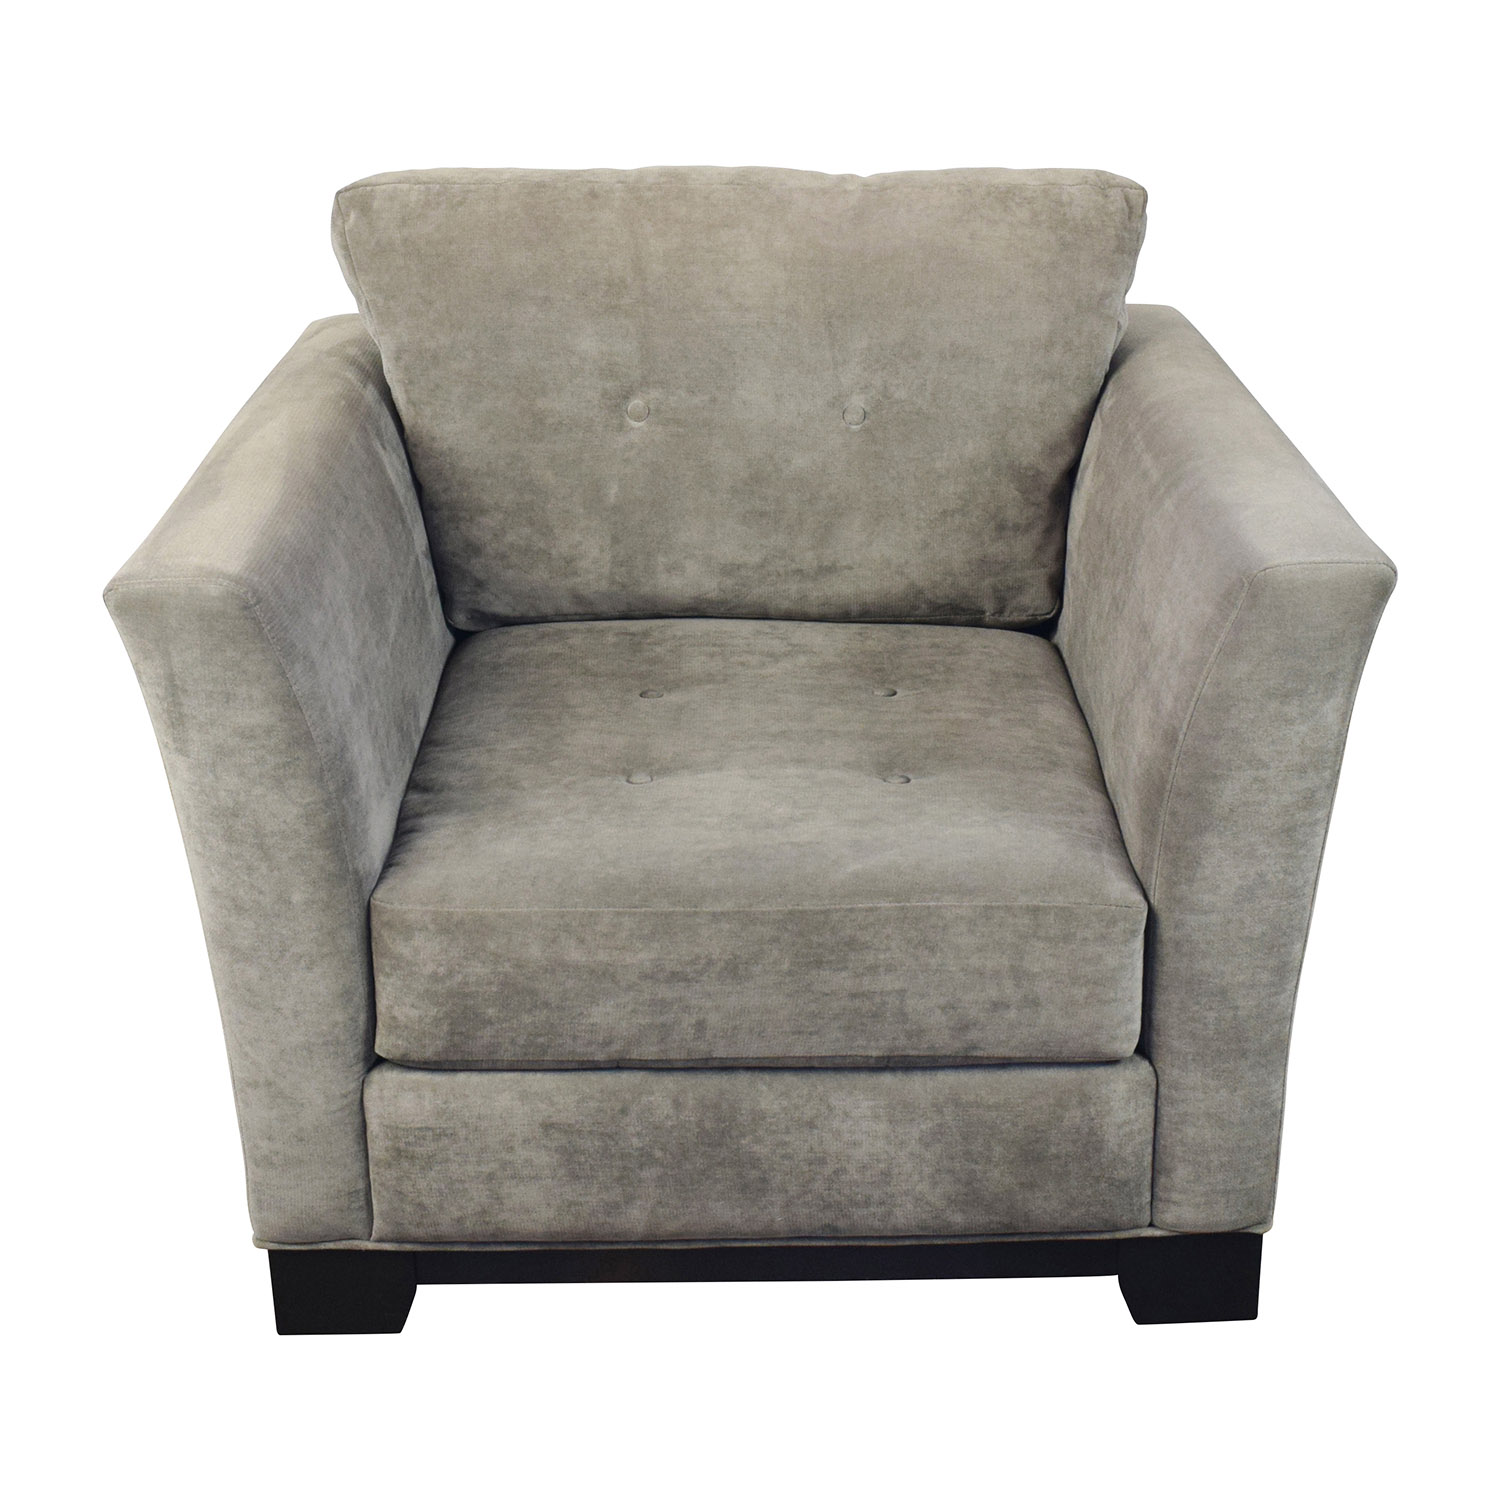 shop Macys Macys Grey Tufted Arm Chair online